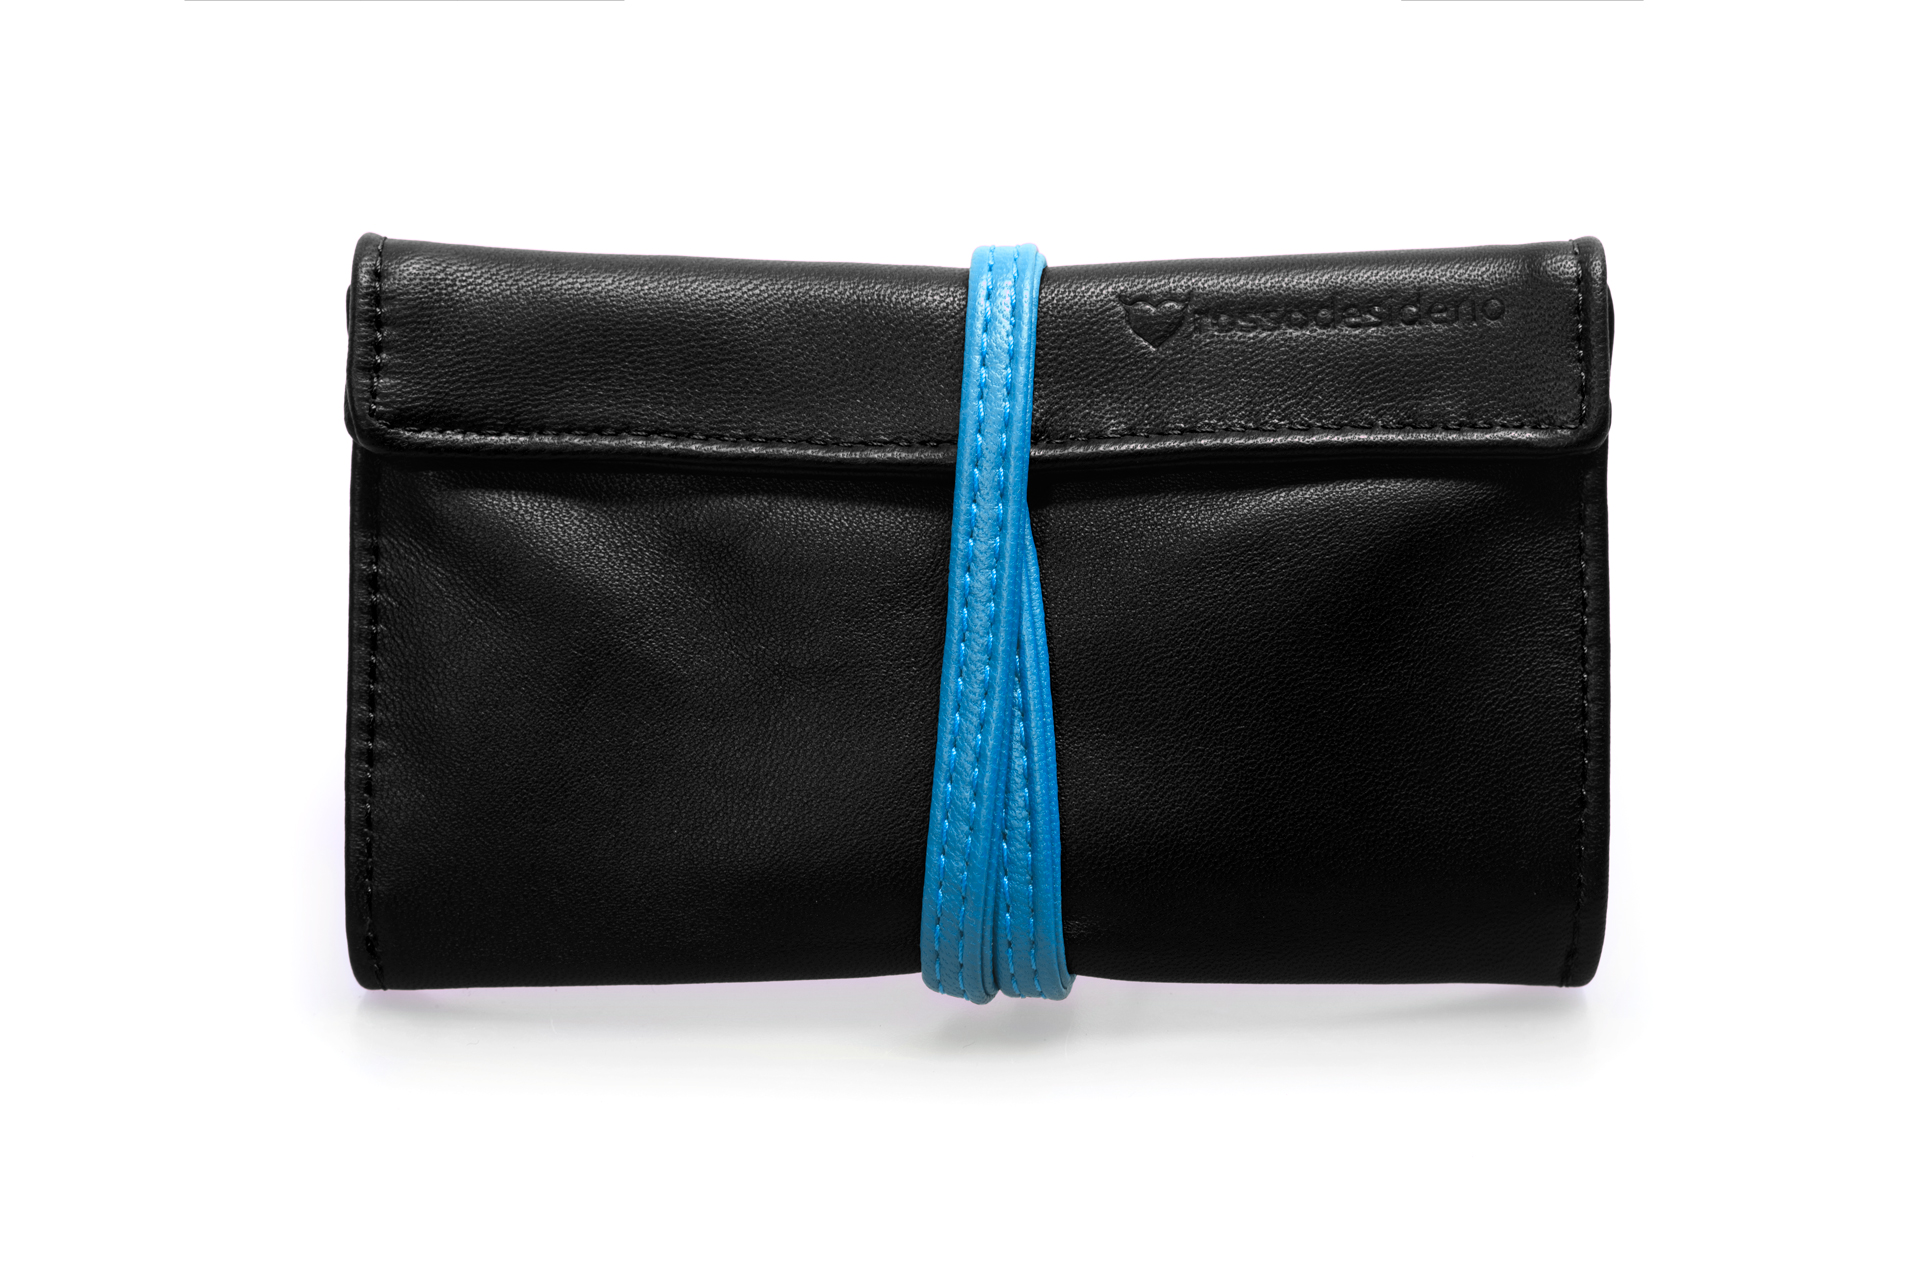 Real leather Black and Avio Blue tobacco pouch